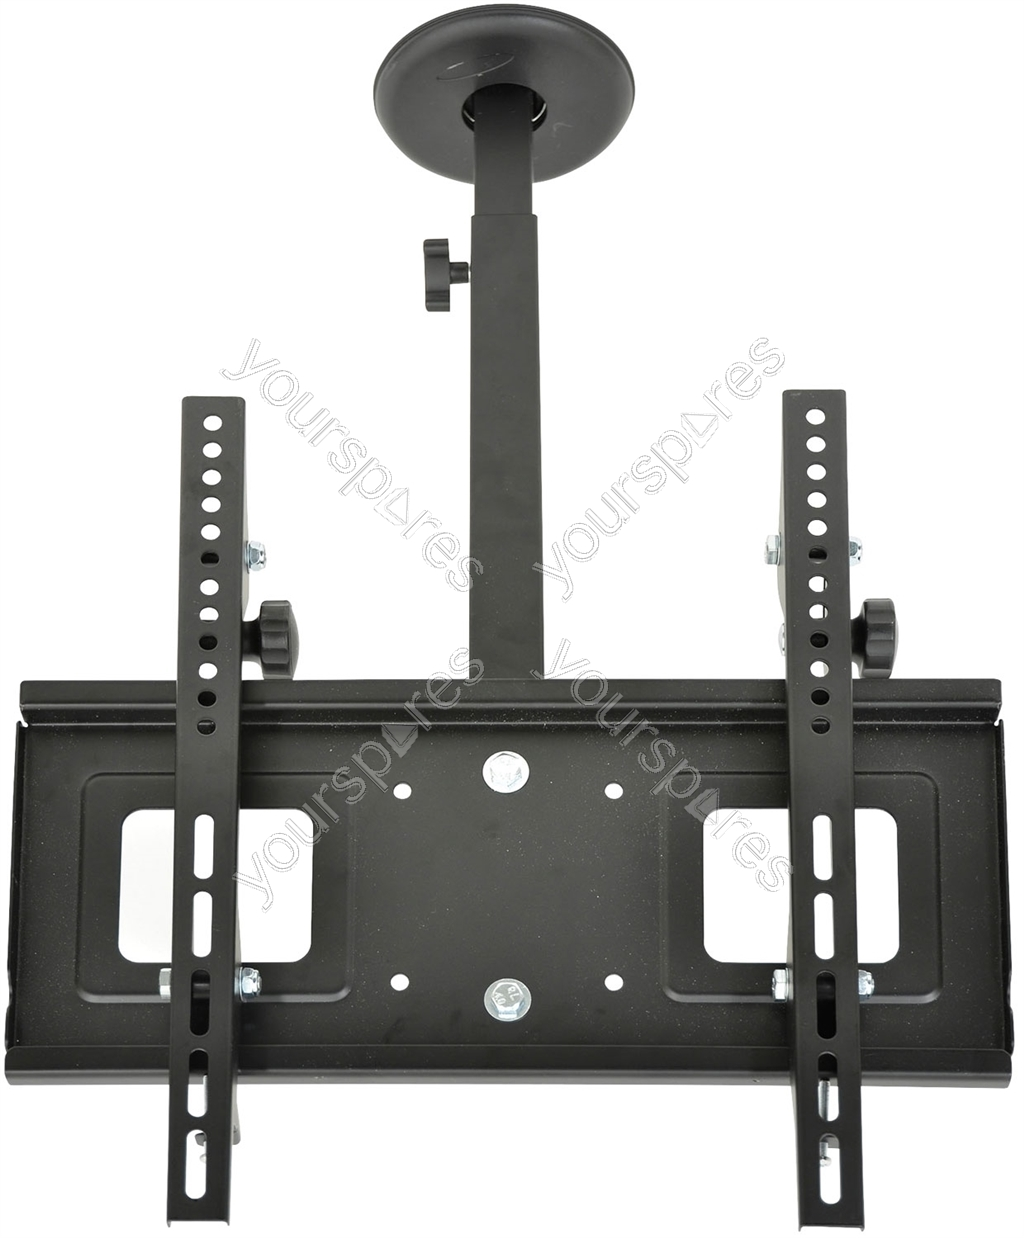 ceiling mount tv brackets 26 50 tc401 by av link. Black Bedroom Furniture Sets. Home Design Ideas